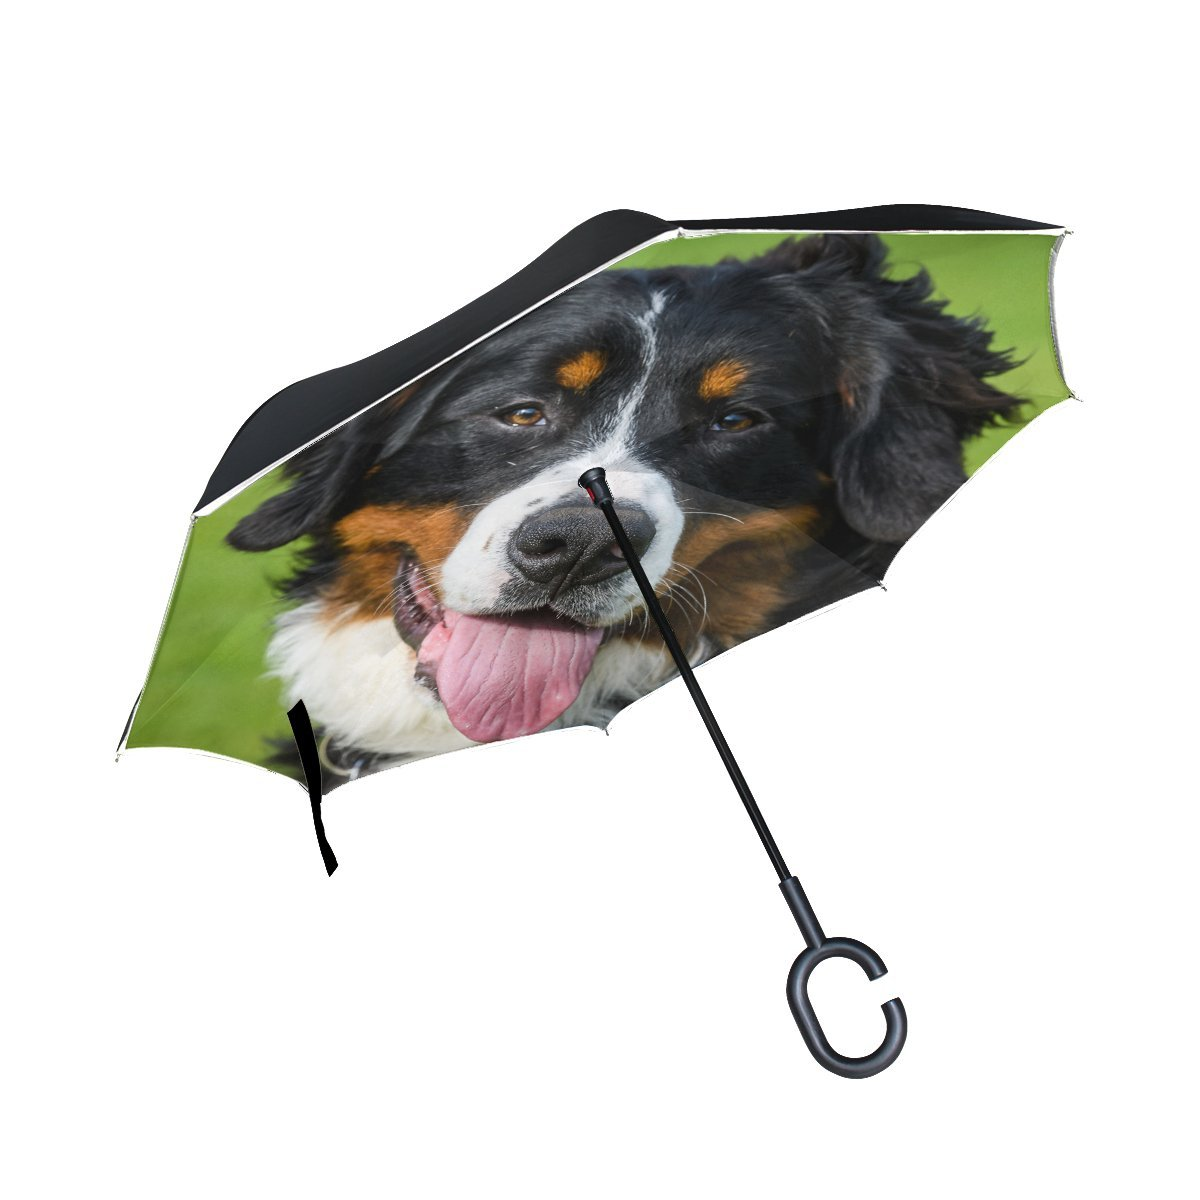 JOCHUAN Animal Dog Affenpinscher Blackandwhite Mix Fluffy Puppy Adorable Pet Inverted Umbrella Large Double Layer Outdoor Rain Sun Car Reversible Umbrella